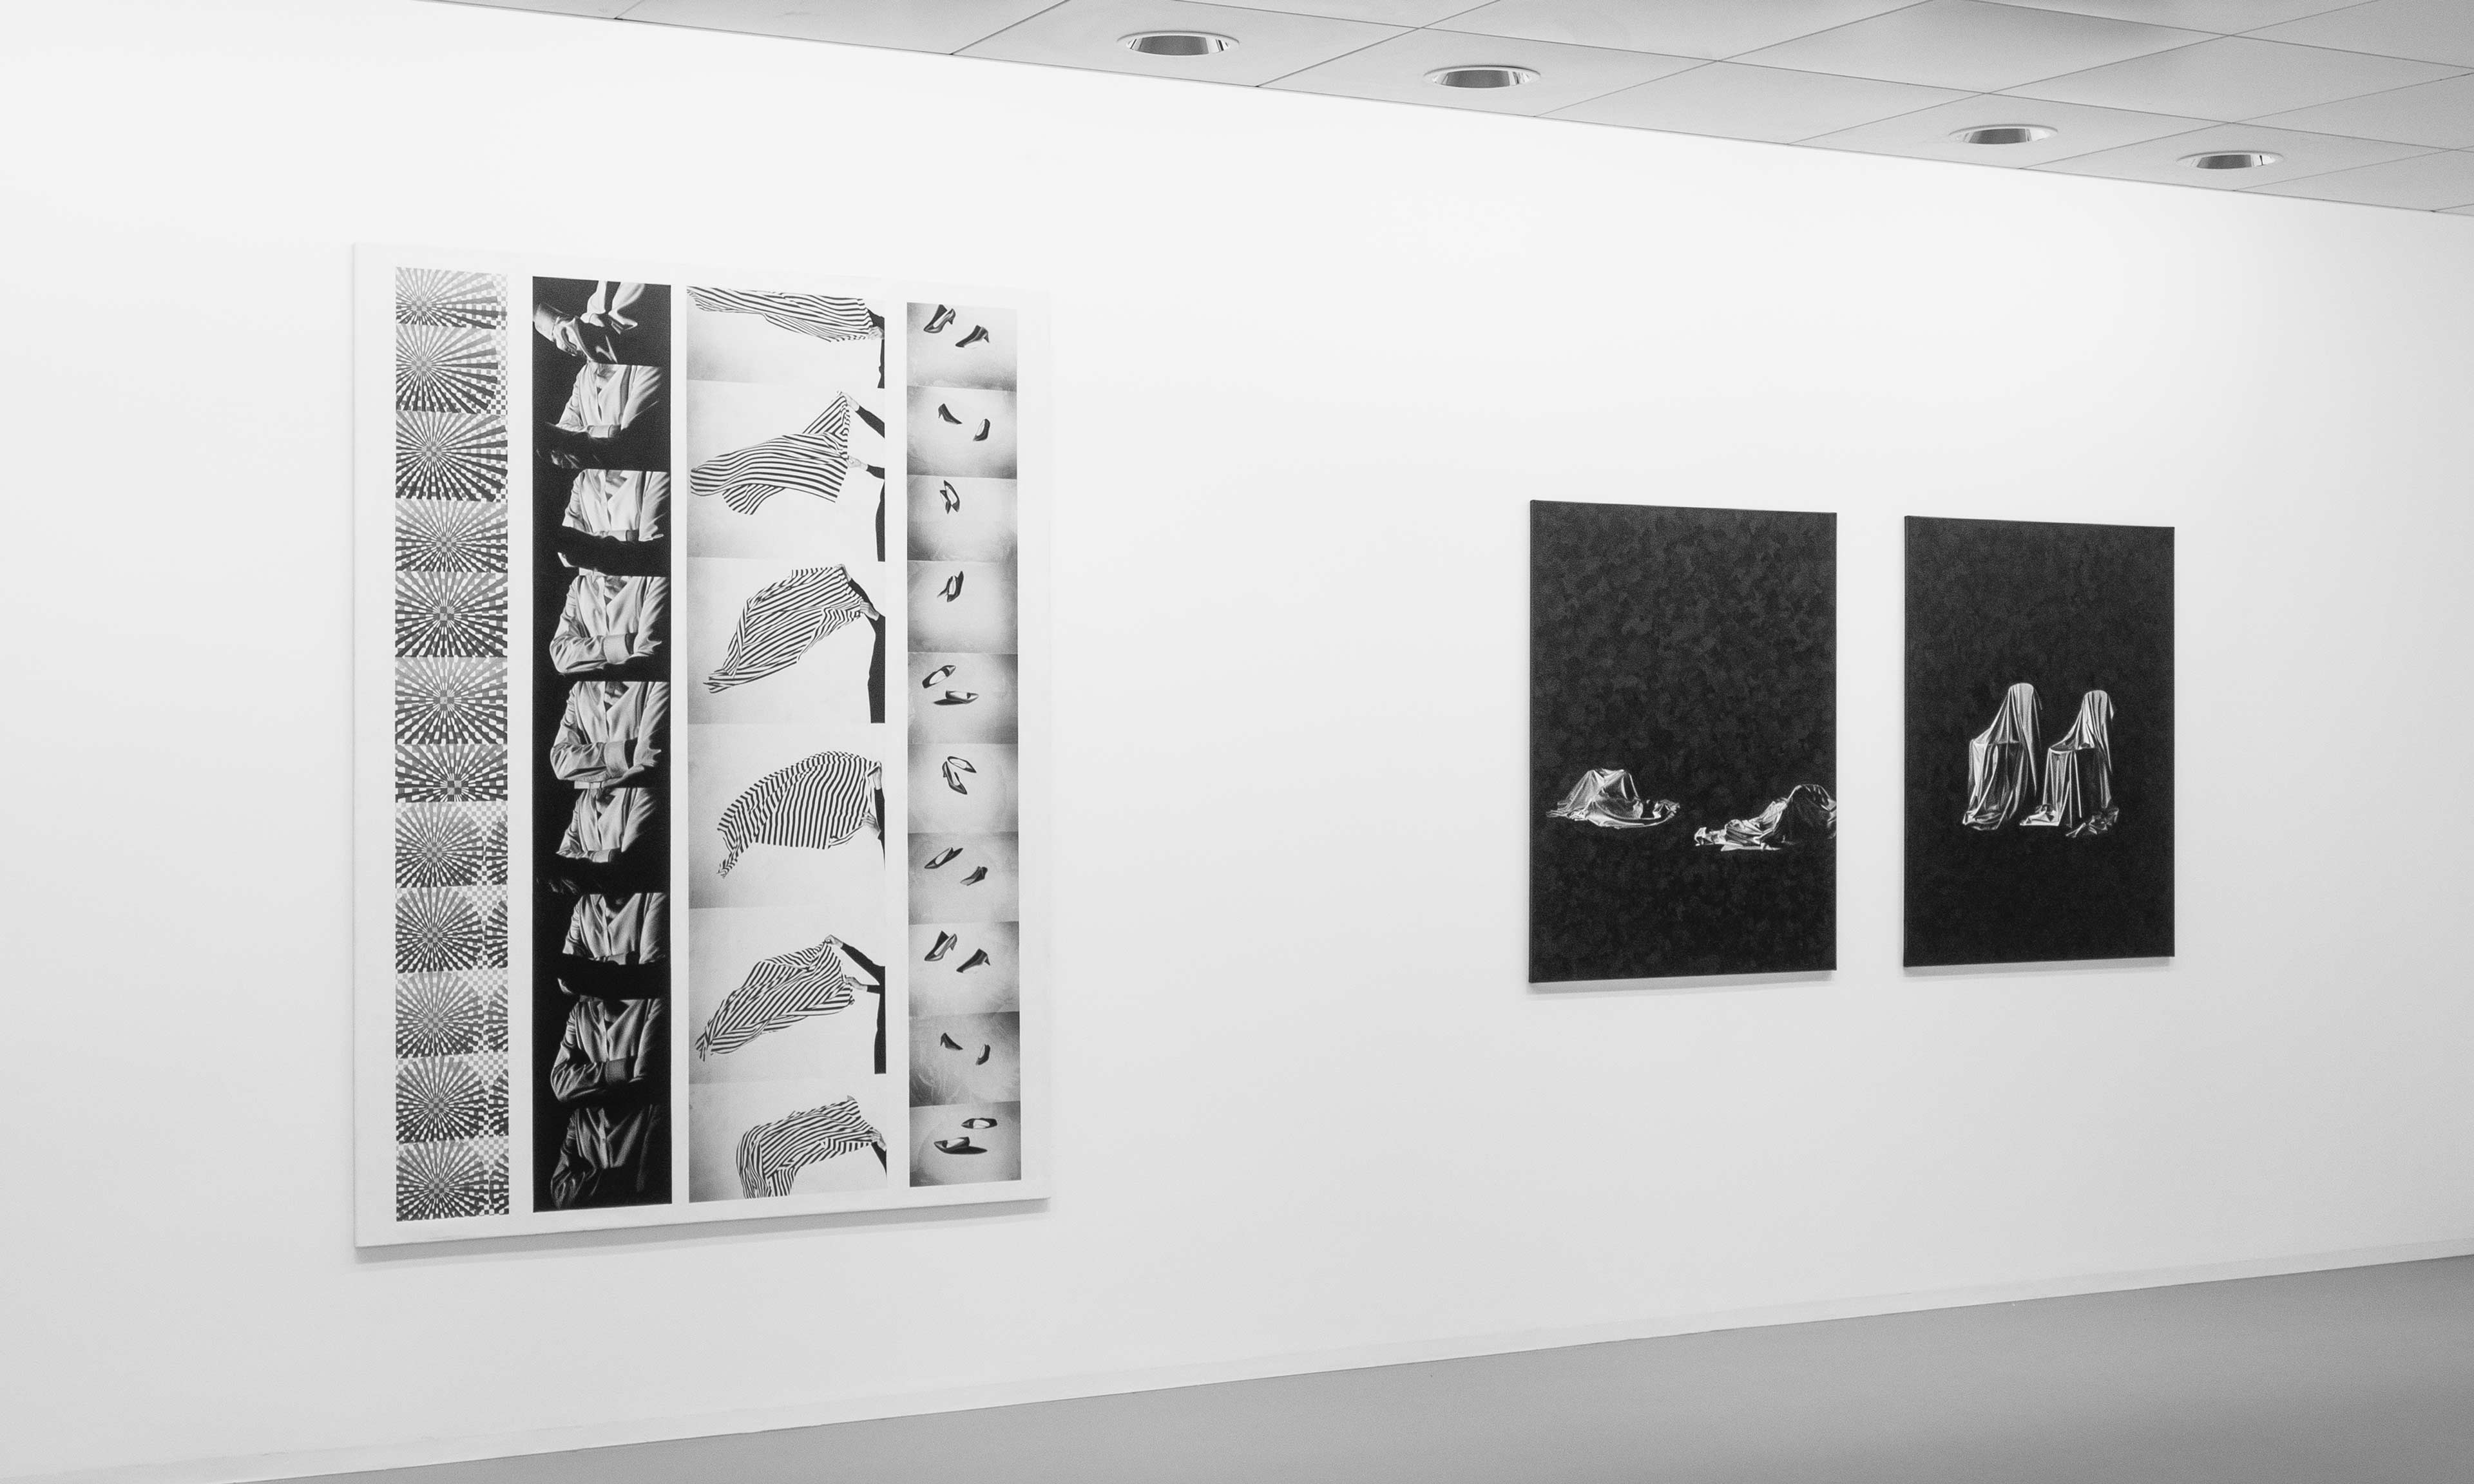 Drago Persic, Installation view